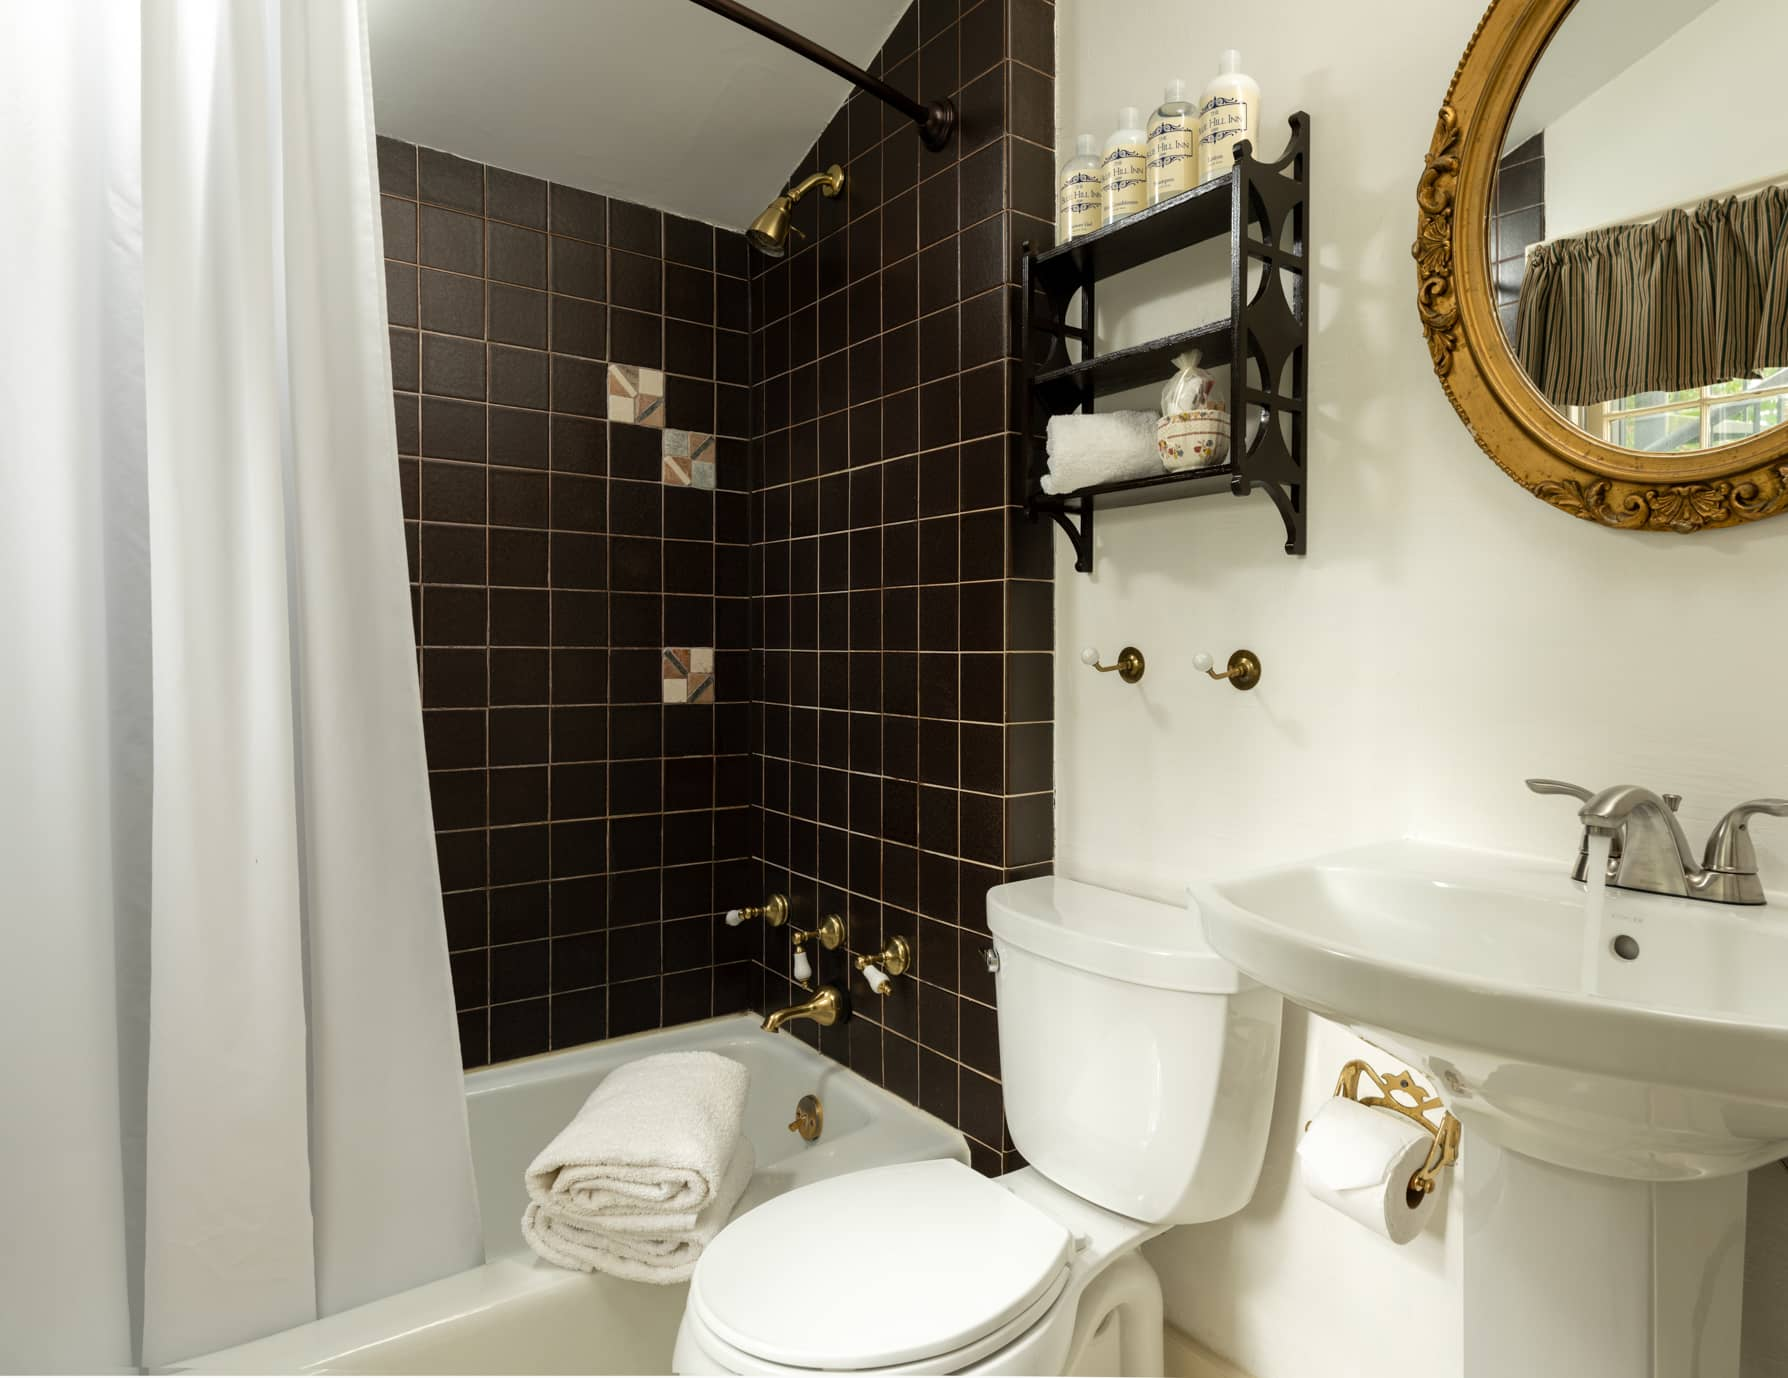 Room 11 bathroom with a sink and mirror and a tub/shower combination